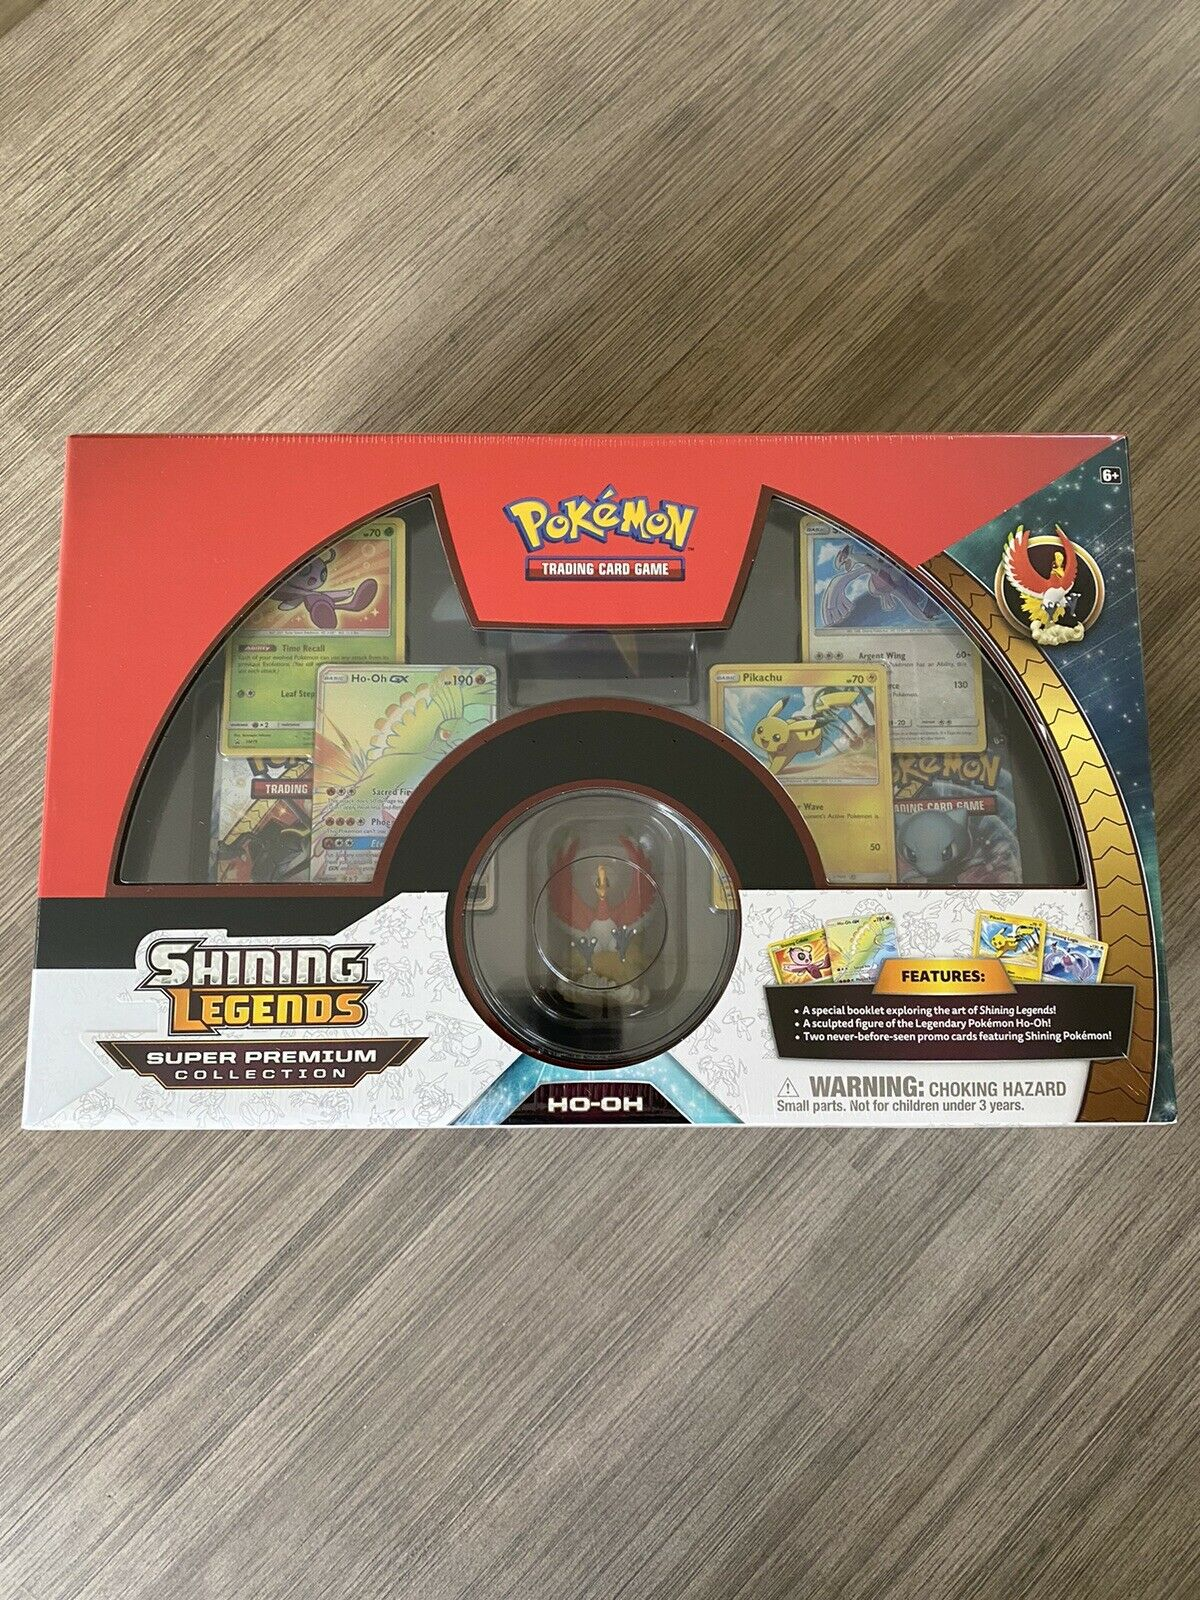 Pokemon TCG Alola Collection Card Game #290-80191 Assorted Colors BRAND BOX  for sale online